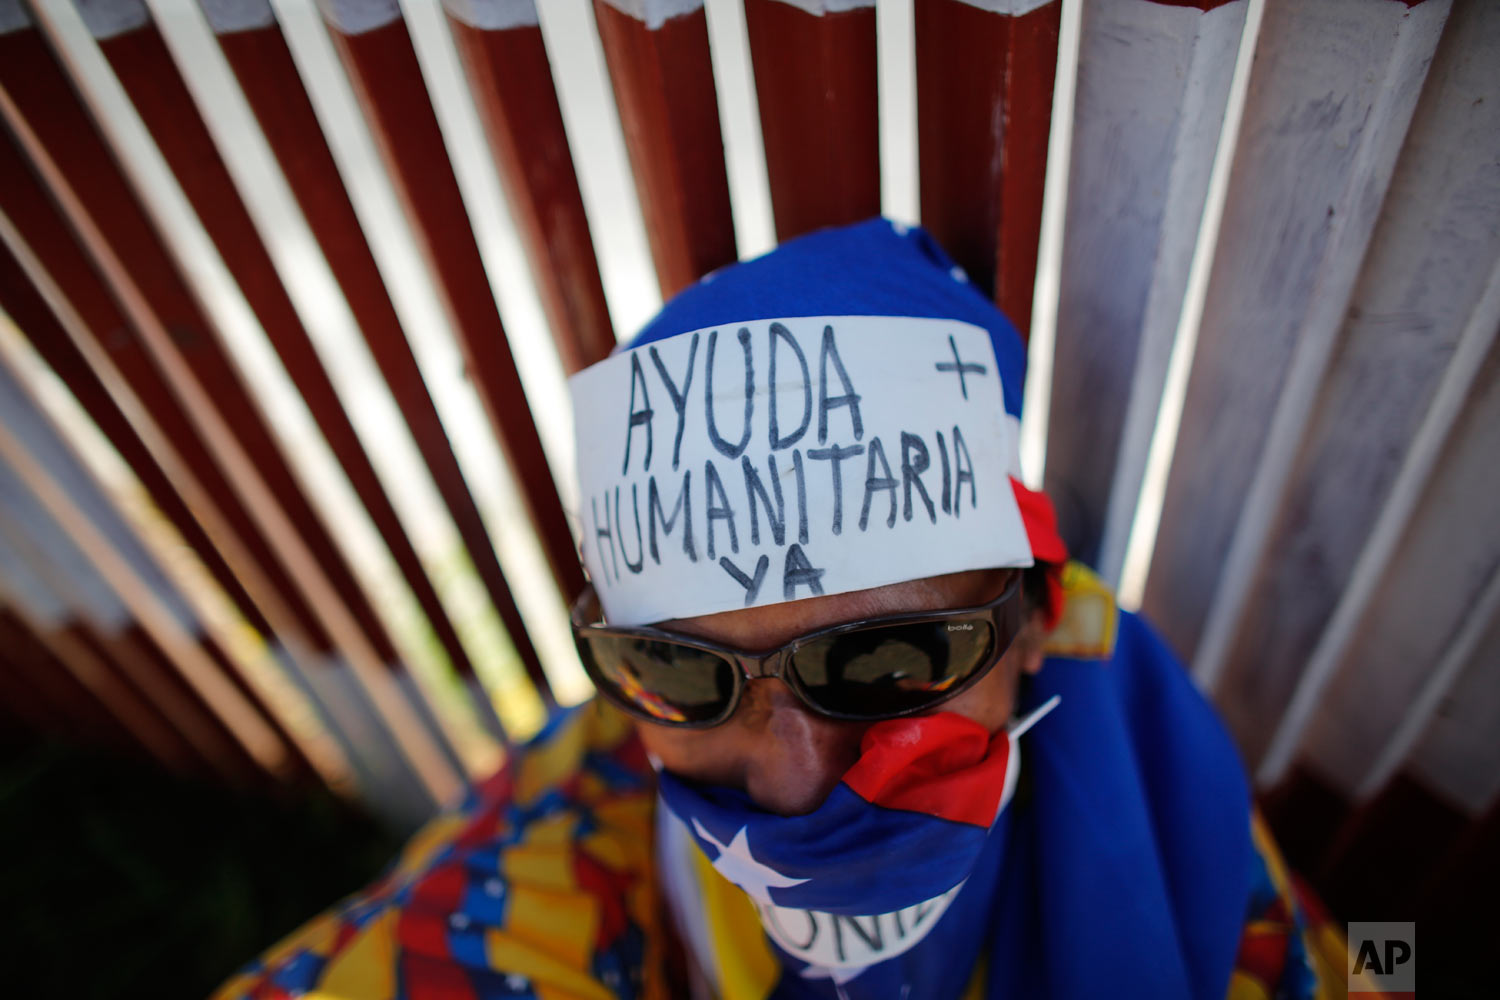 """An opposition protester wears the Spanish message on his forehead: """"Humanitarian aid now"""" during a demonstration urging soldiers to allow the entry of U.S. humanitarian aid in Caracas, Venezuela, Saturday, Feb. 23, 2019. (AP Photo/Ariana Cubillos)"""